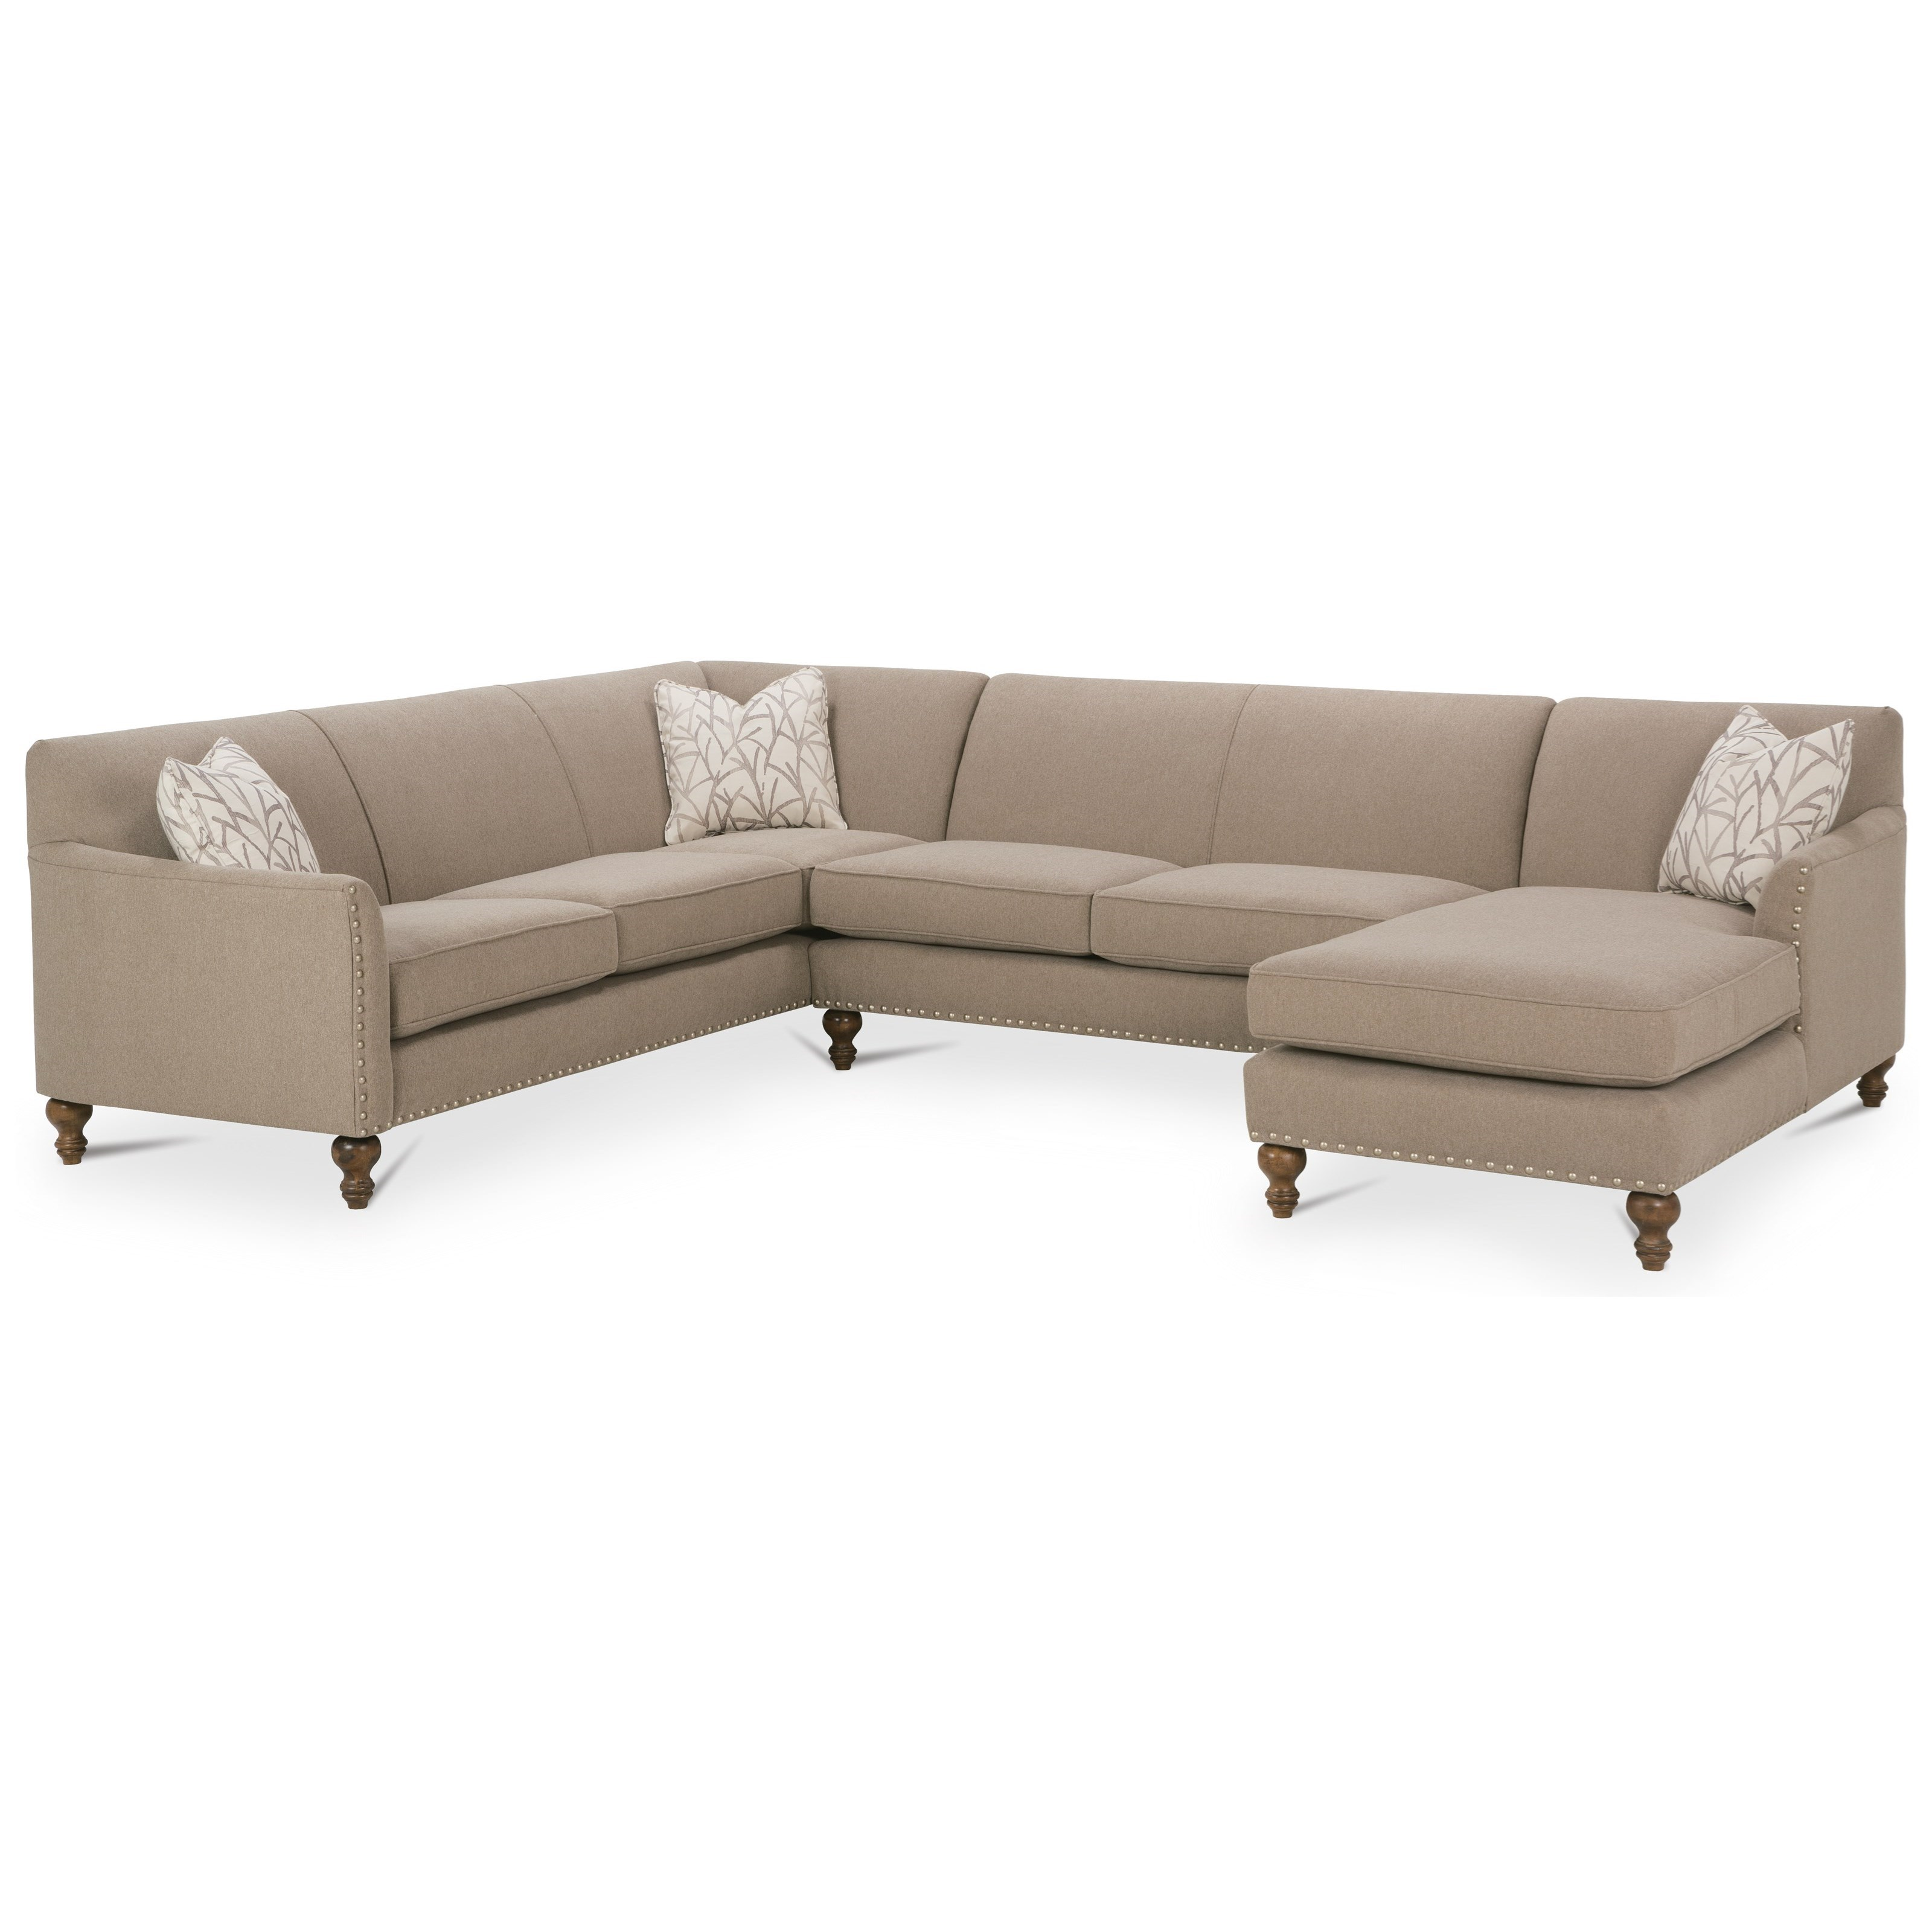 Rowe Varick Rxo Customizable 3 Piece Sectional Sofa W Laf Chaise Belfort Furniture